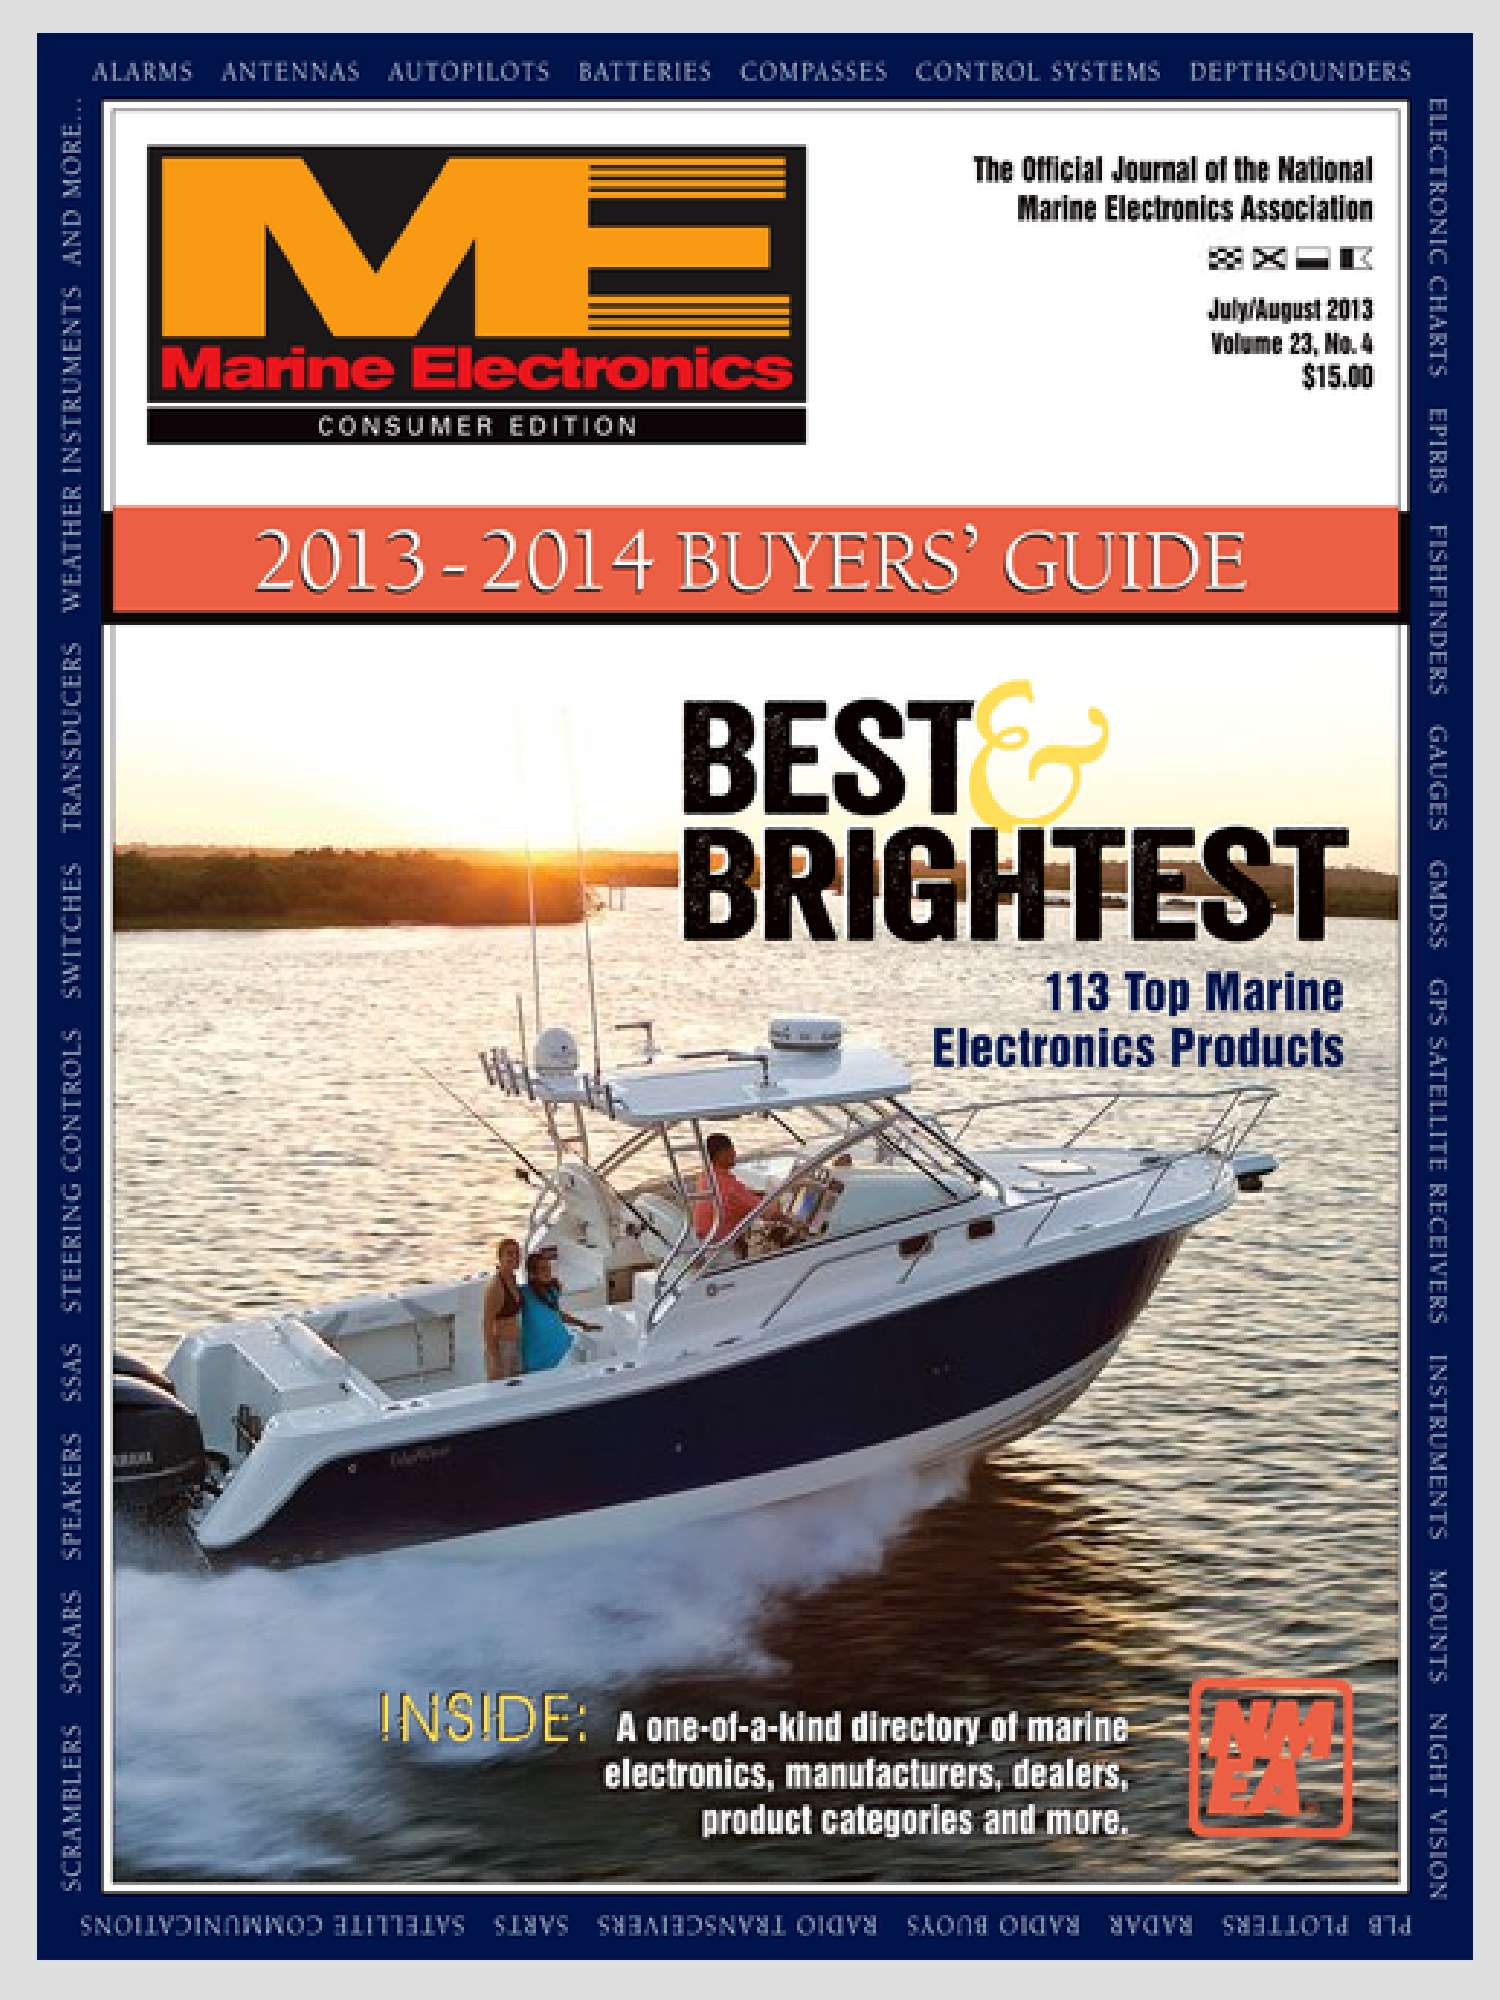 digital yacht, author at digital yacht news page 35 of 51marine electronic\u0027s journal \u2013 now on line